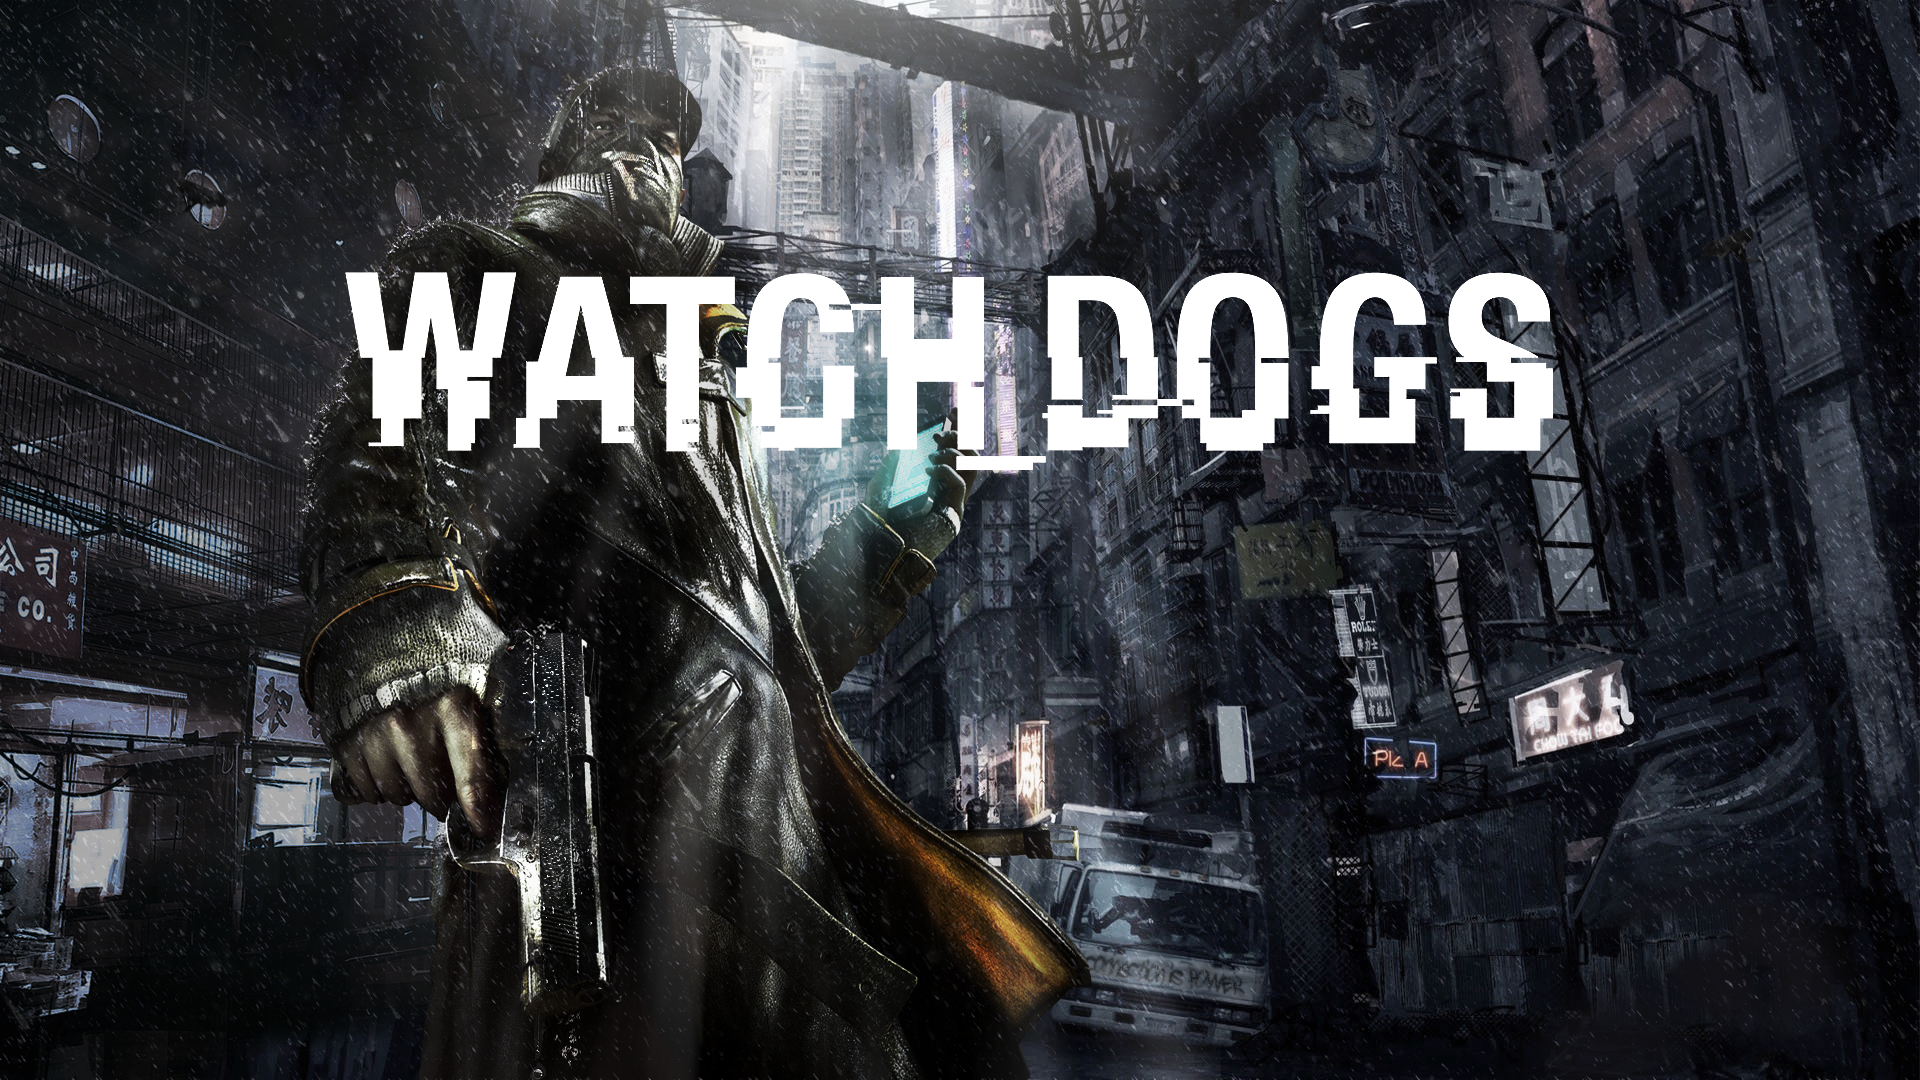 High Quality Creative Watchdogs Pictures, 1920x1080 px, Scott Boss